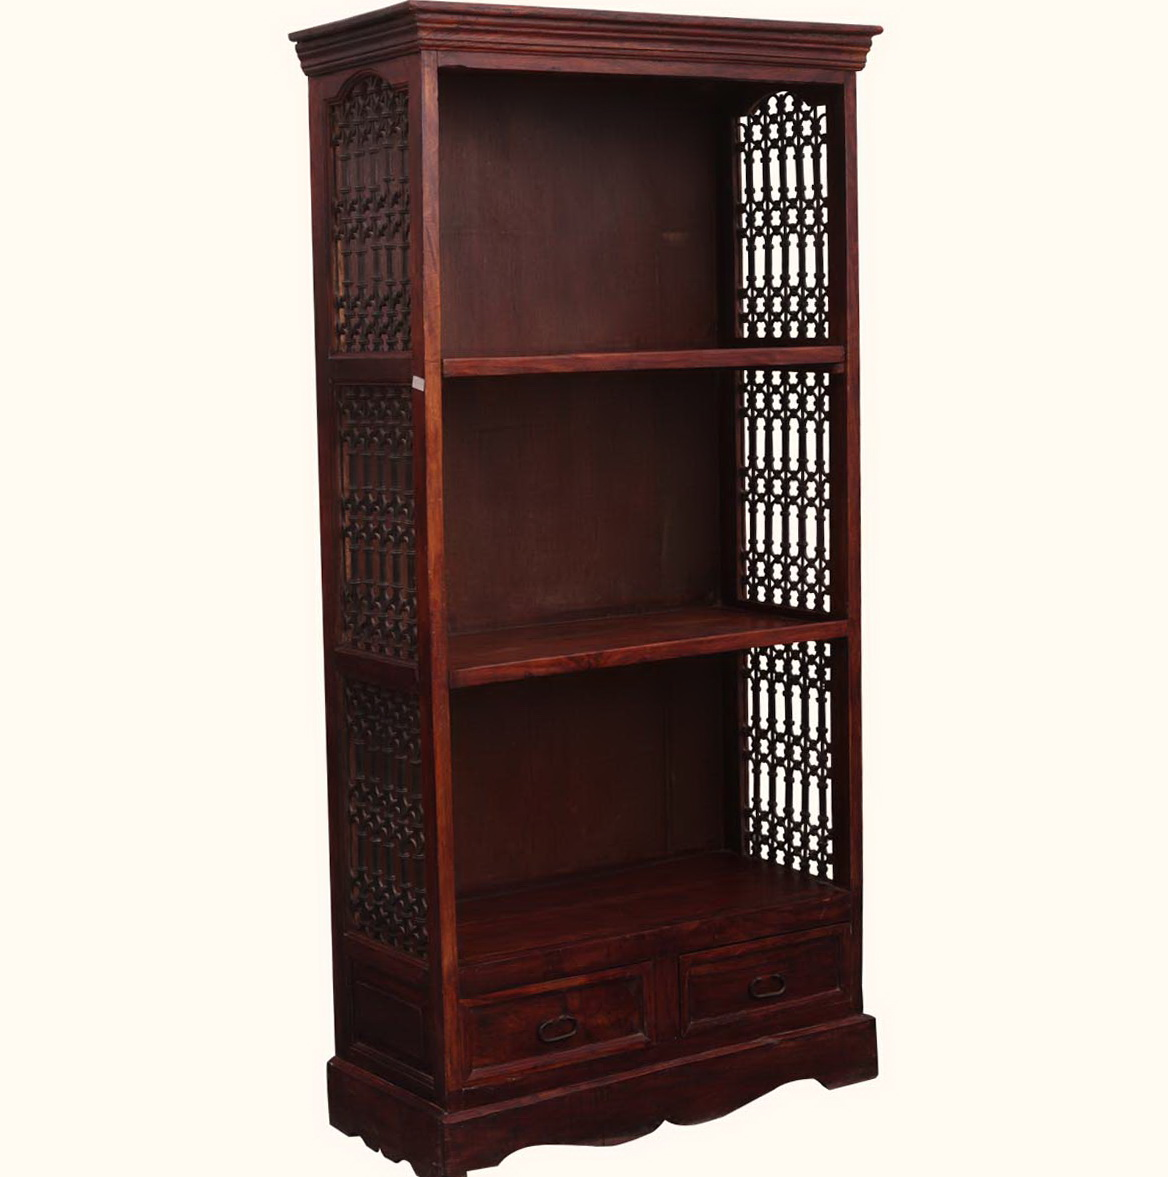 Solid Wood Bookcases For Sale